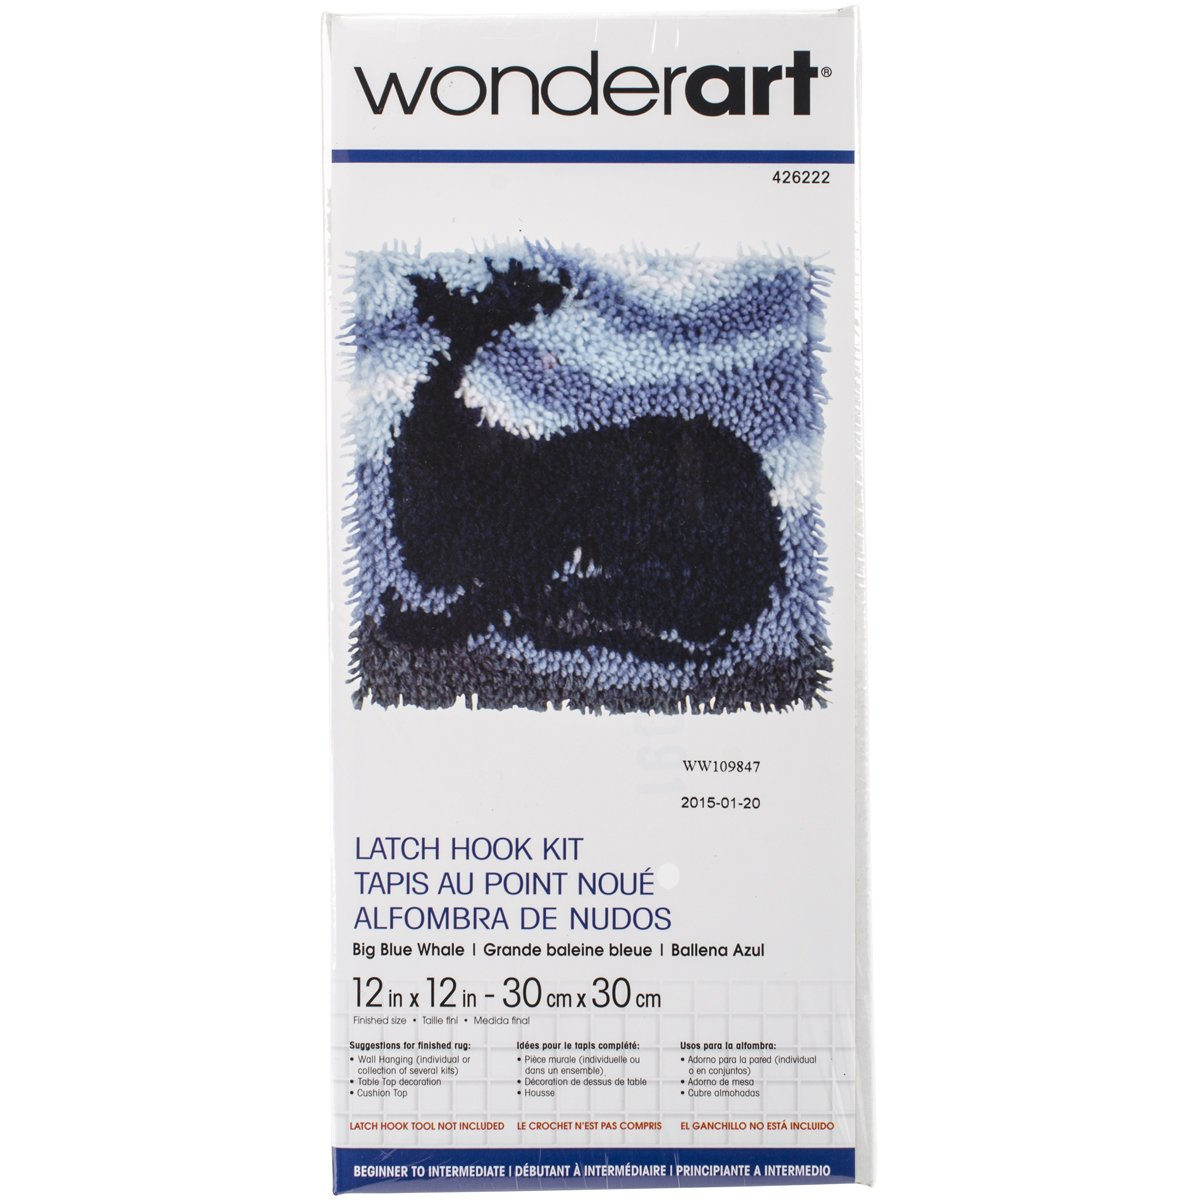 12 X 12 Wonderart Best Friends Latch Hook Kit